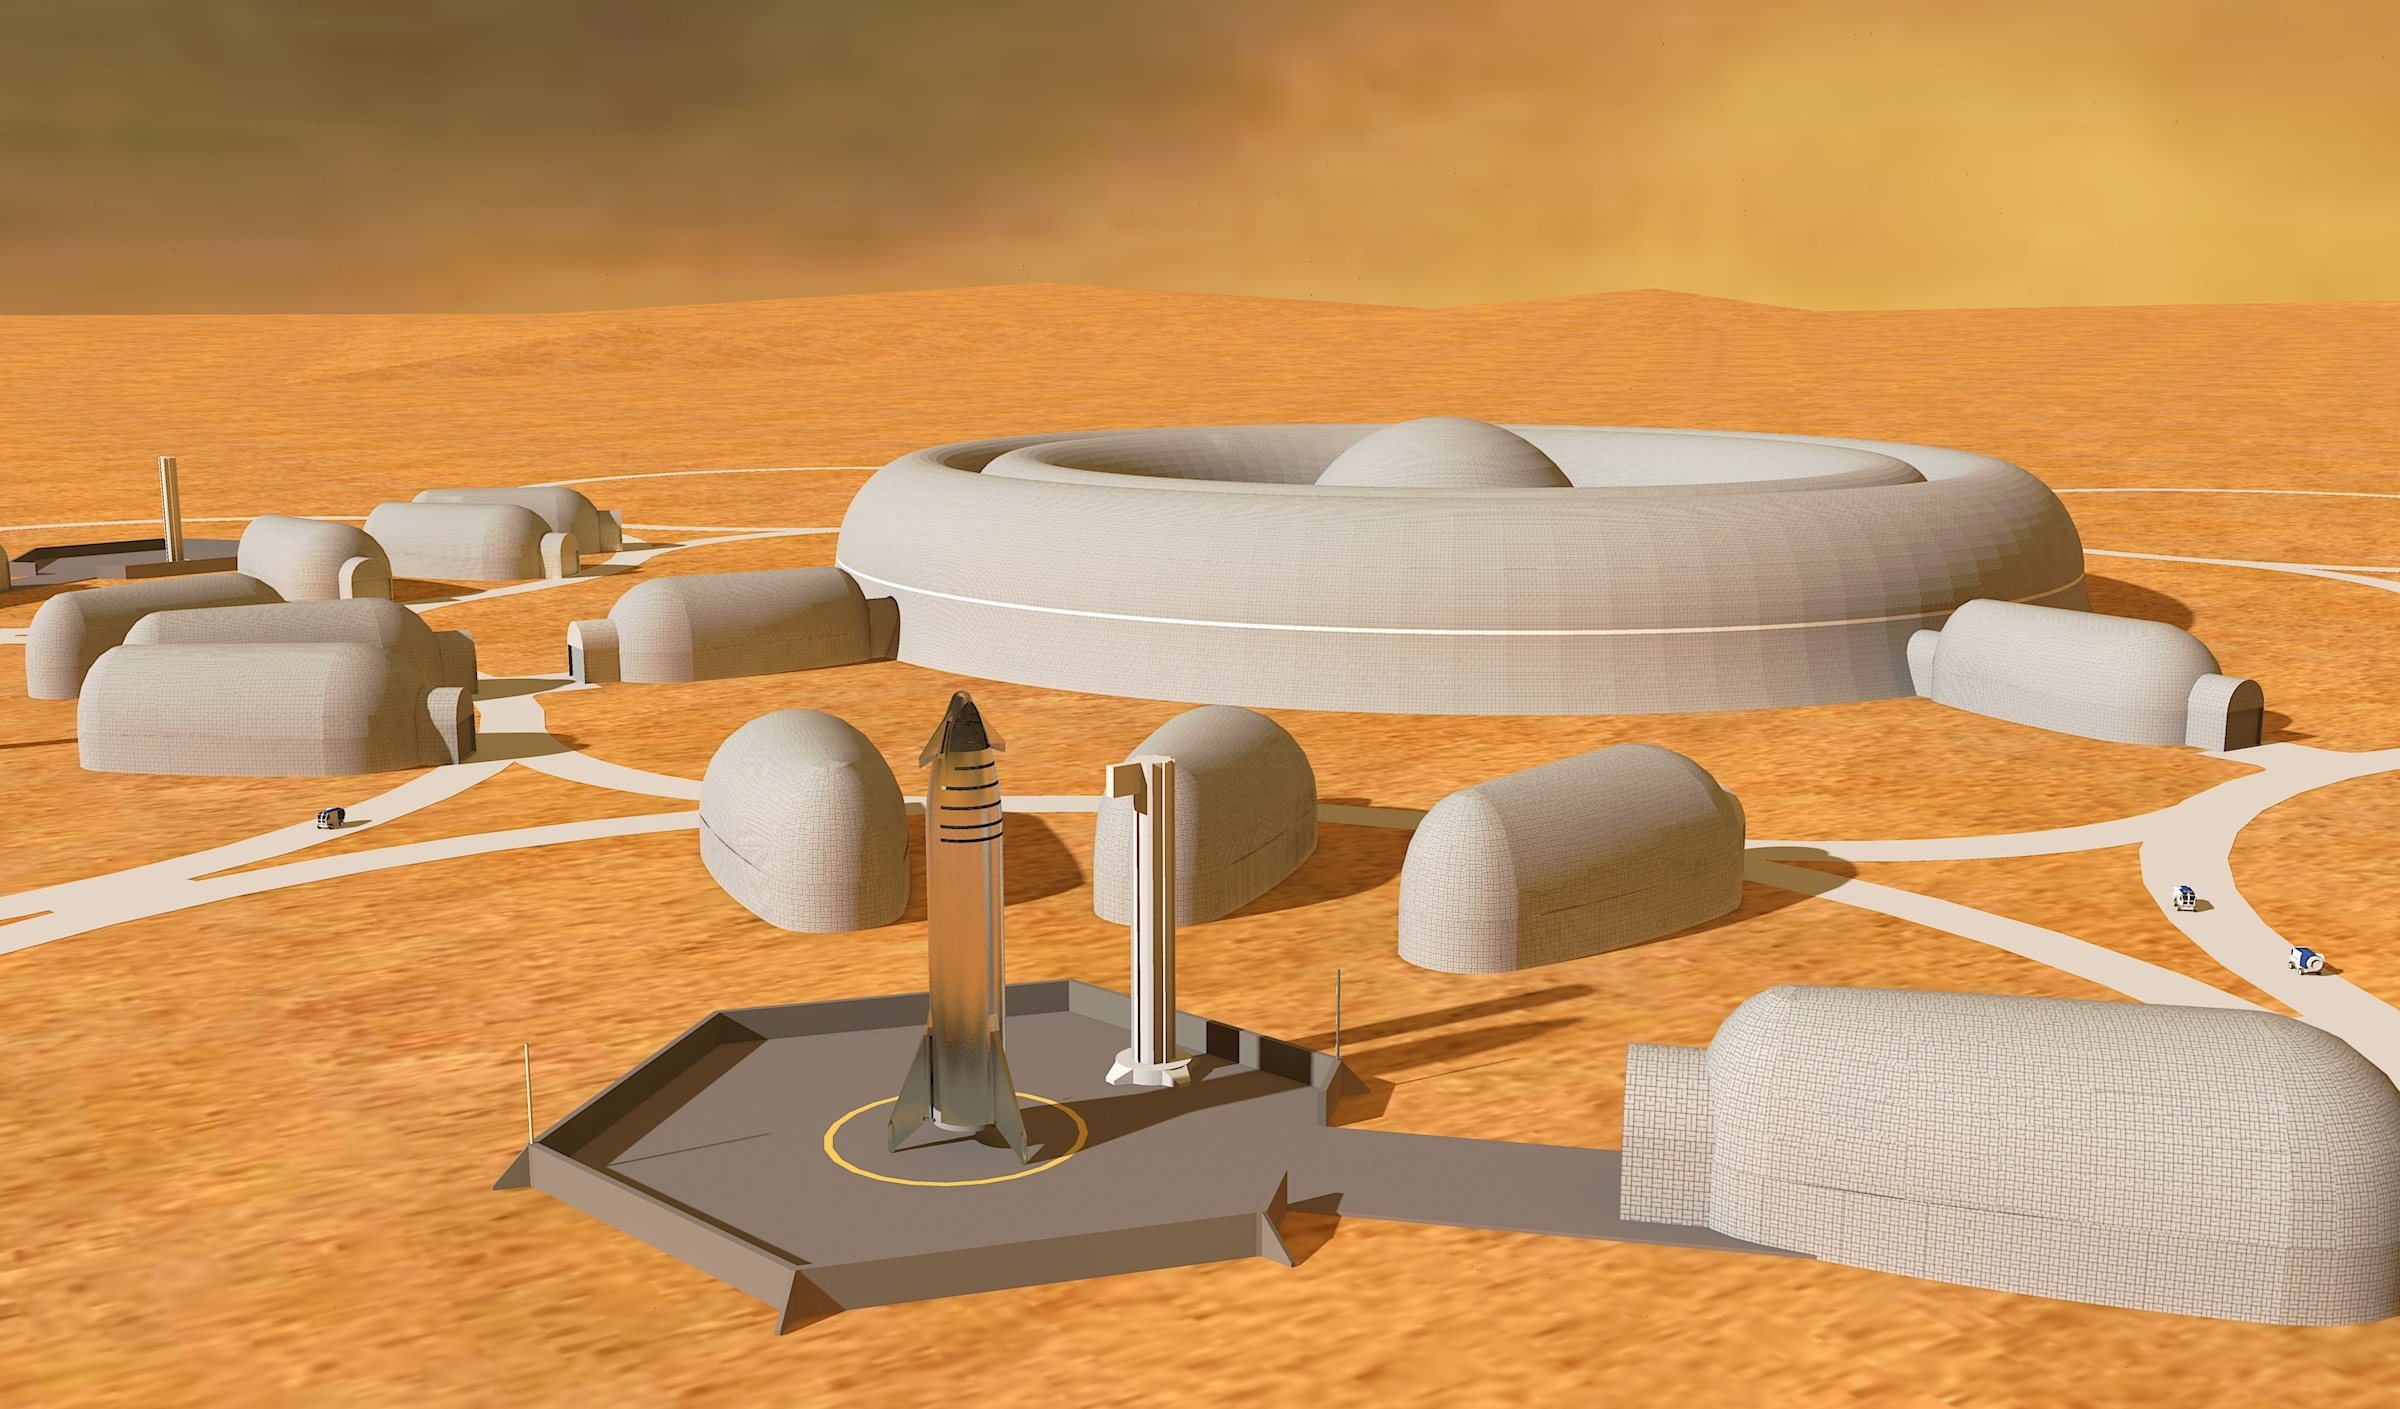 Mars Colony Design Update